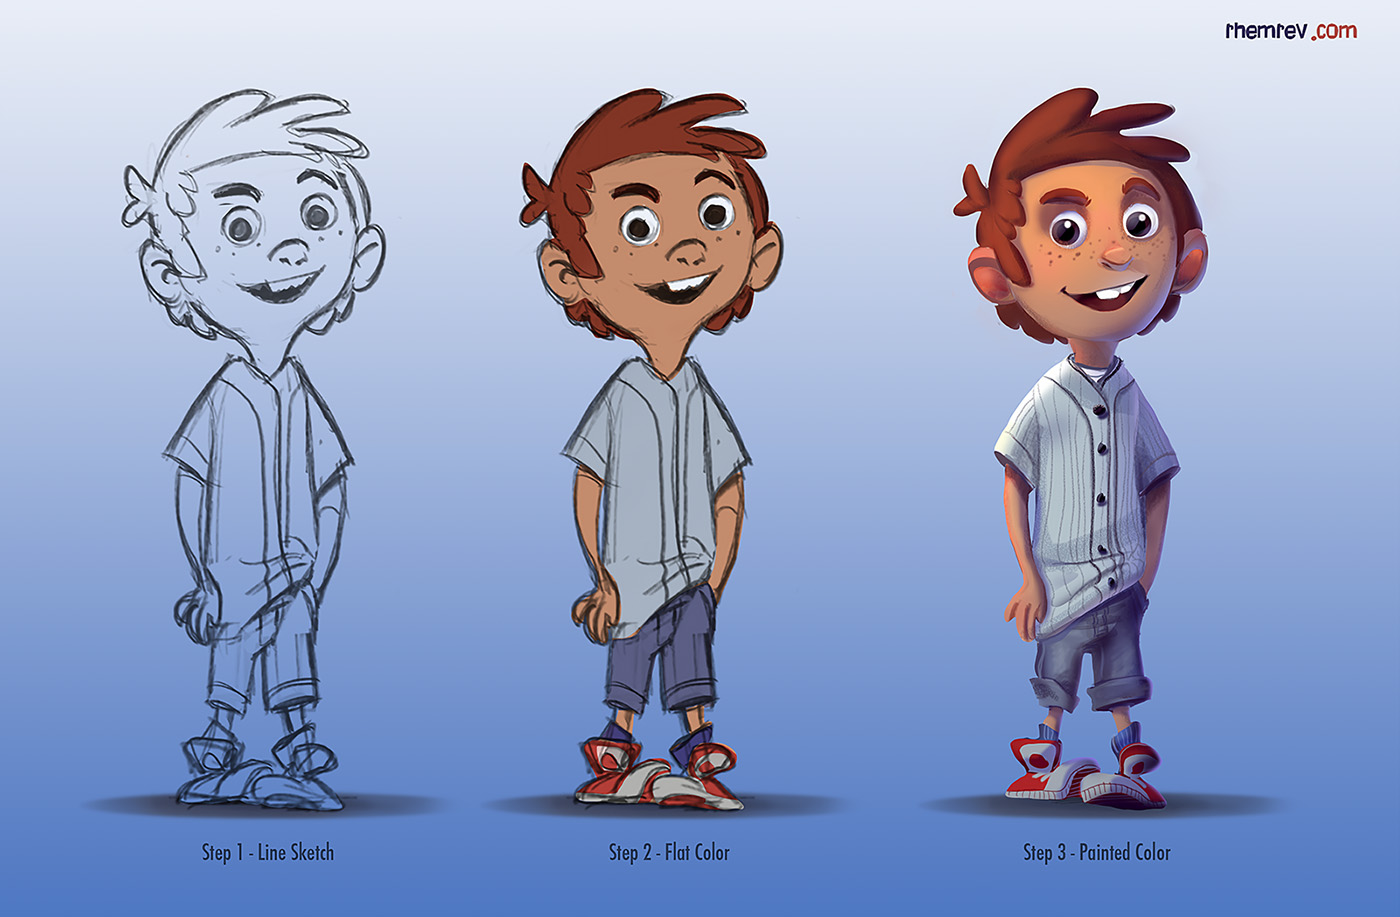 Character Design Workflow : Rhemrev visual development character process